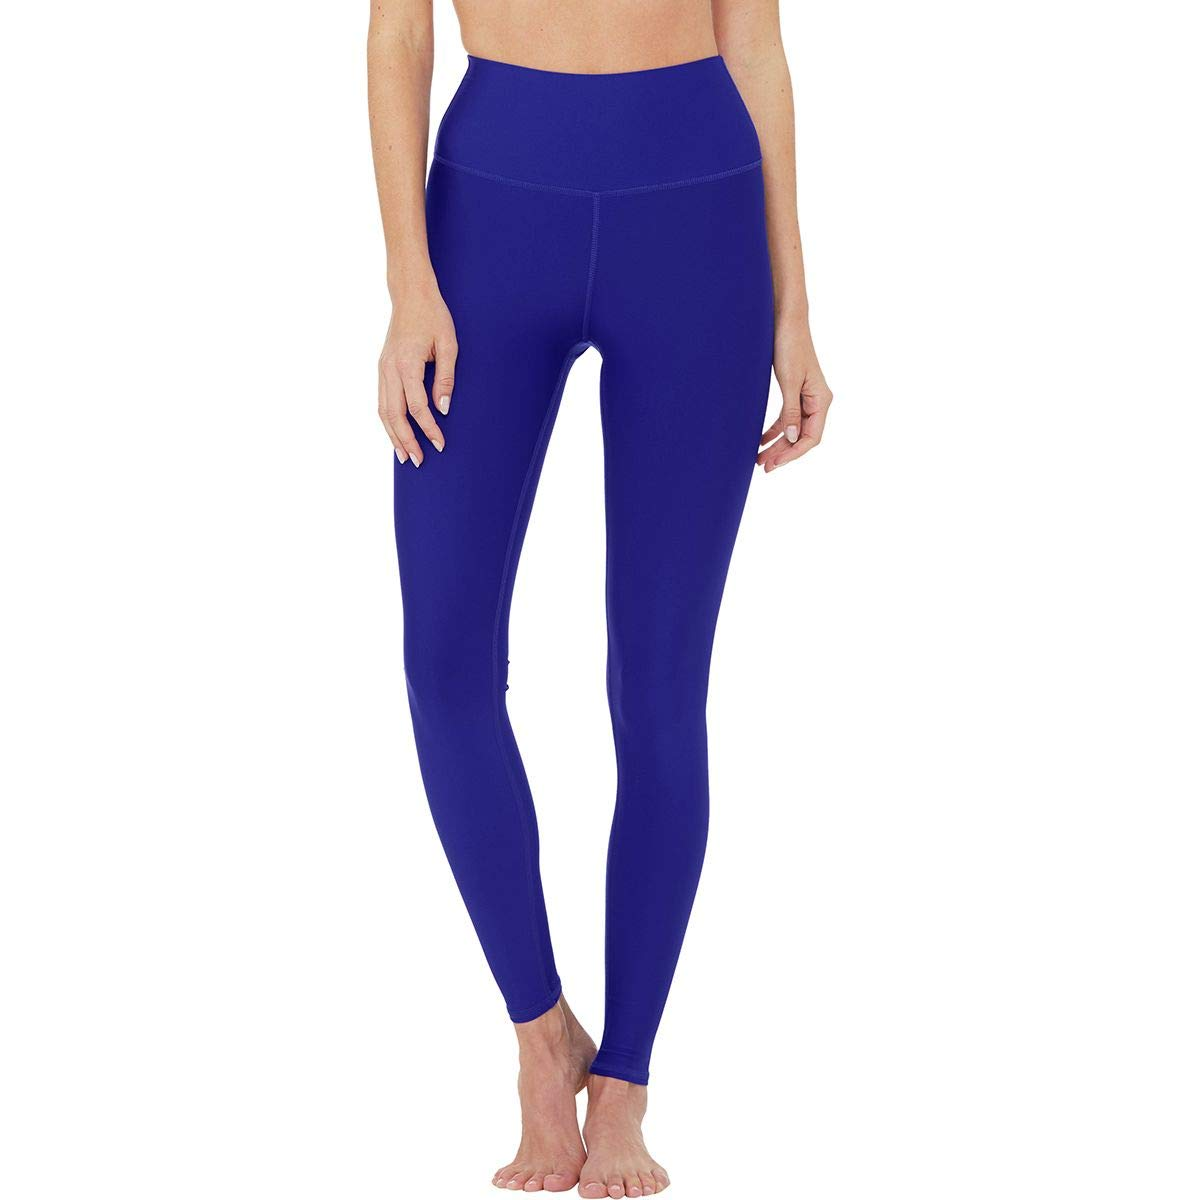 Alo Yoga High-Waist Airlift Legging - Women's Sapphire, M by Alo Yoga (Image #1)